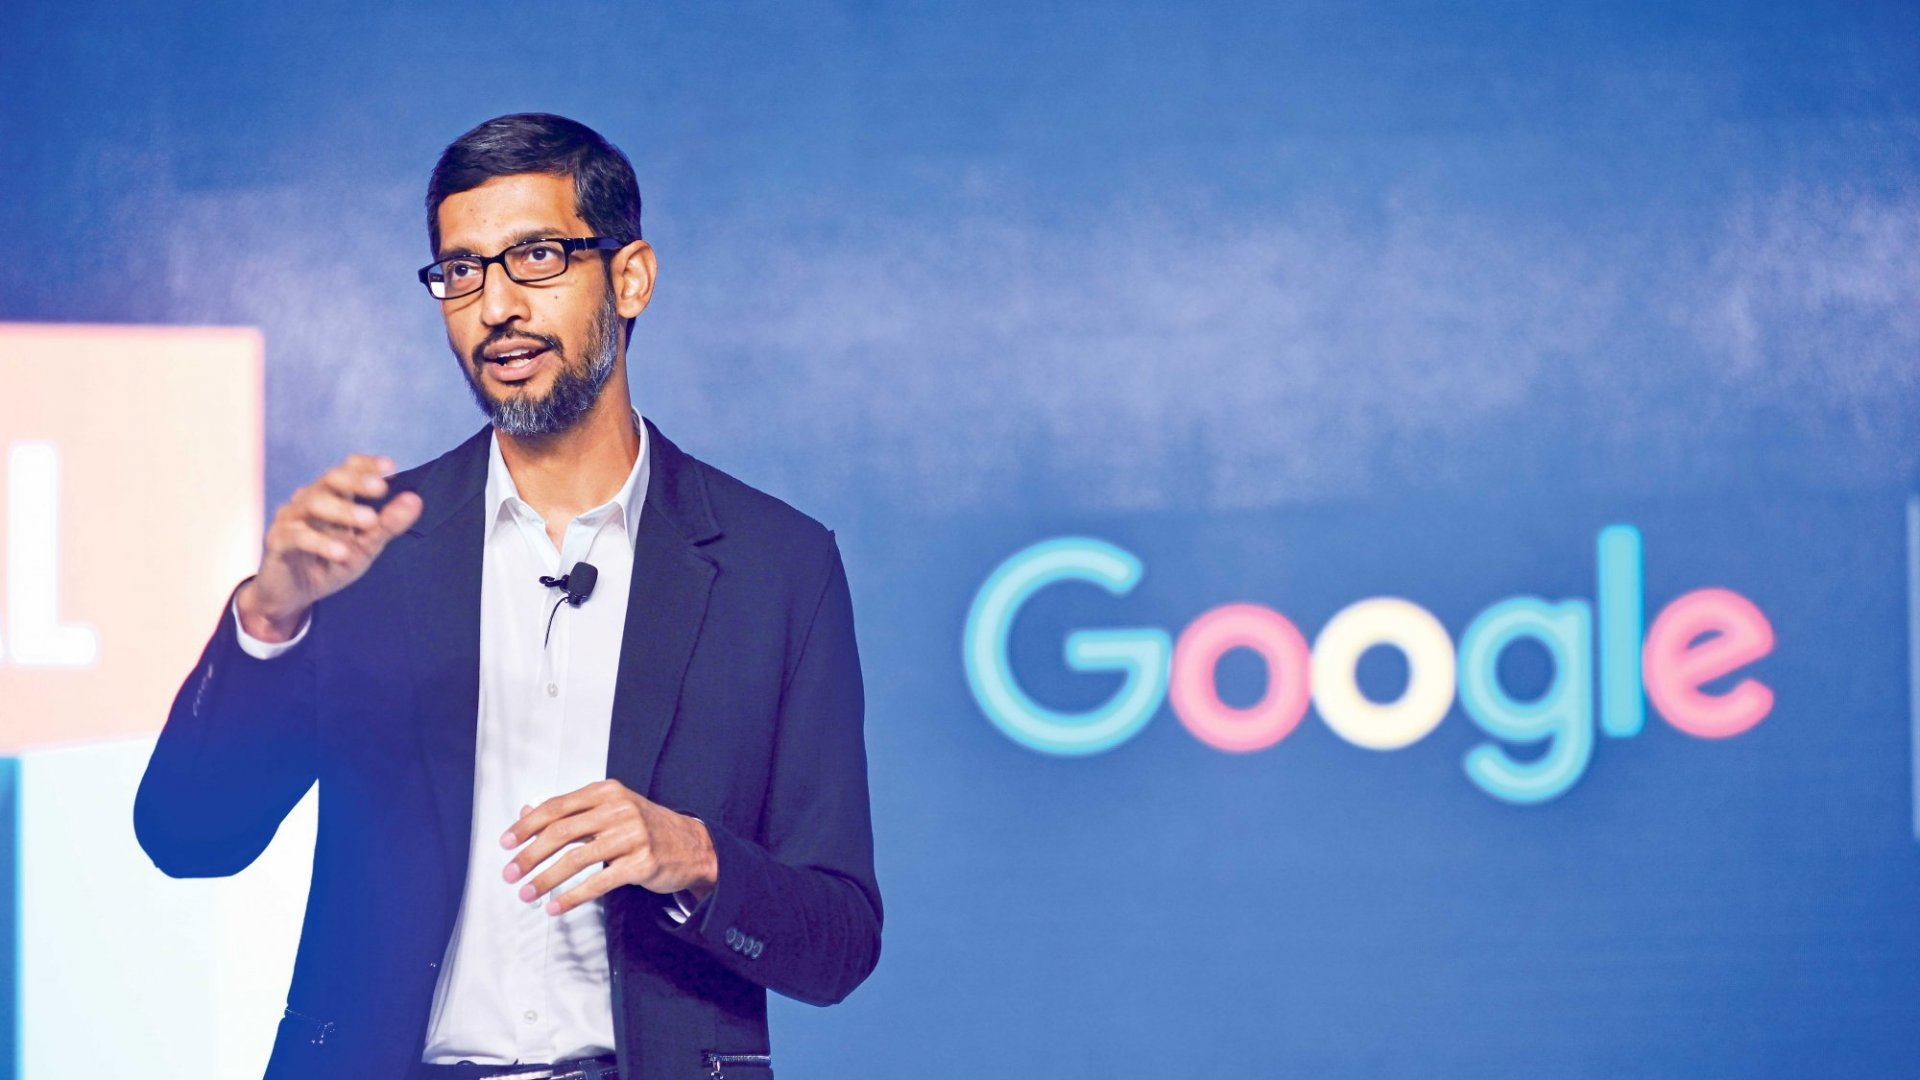 Google Wanted to Know What Makes a Manager Great, So It Conducted a Study. Here Are the Results